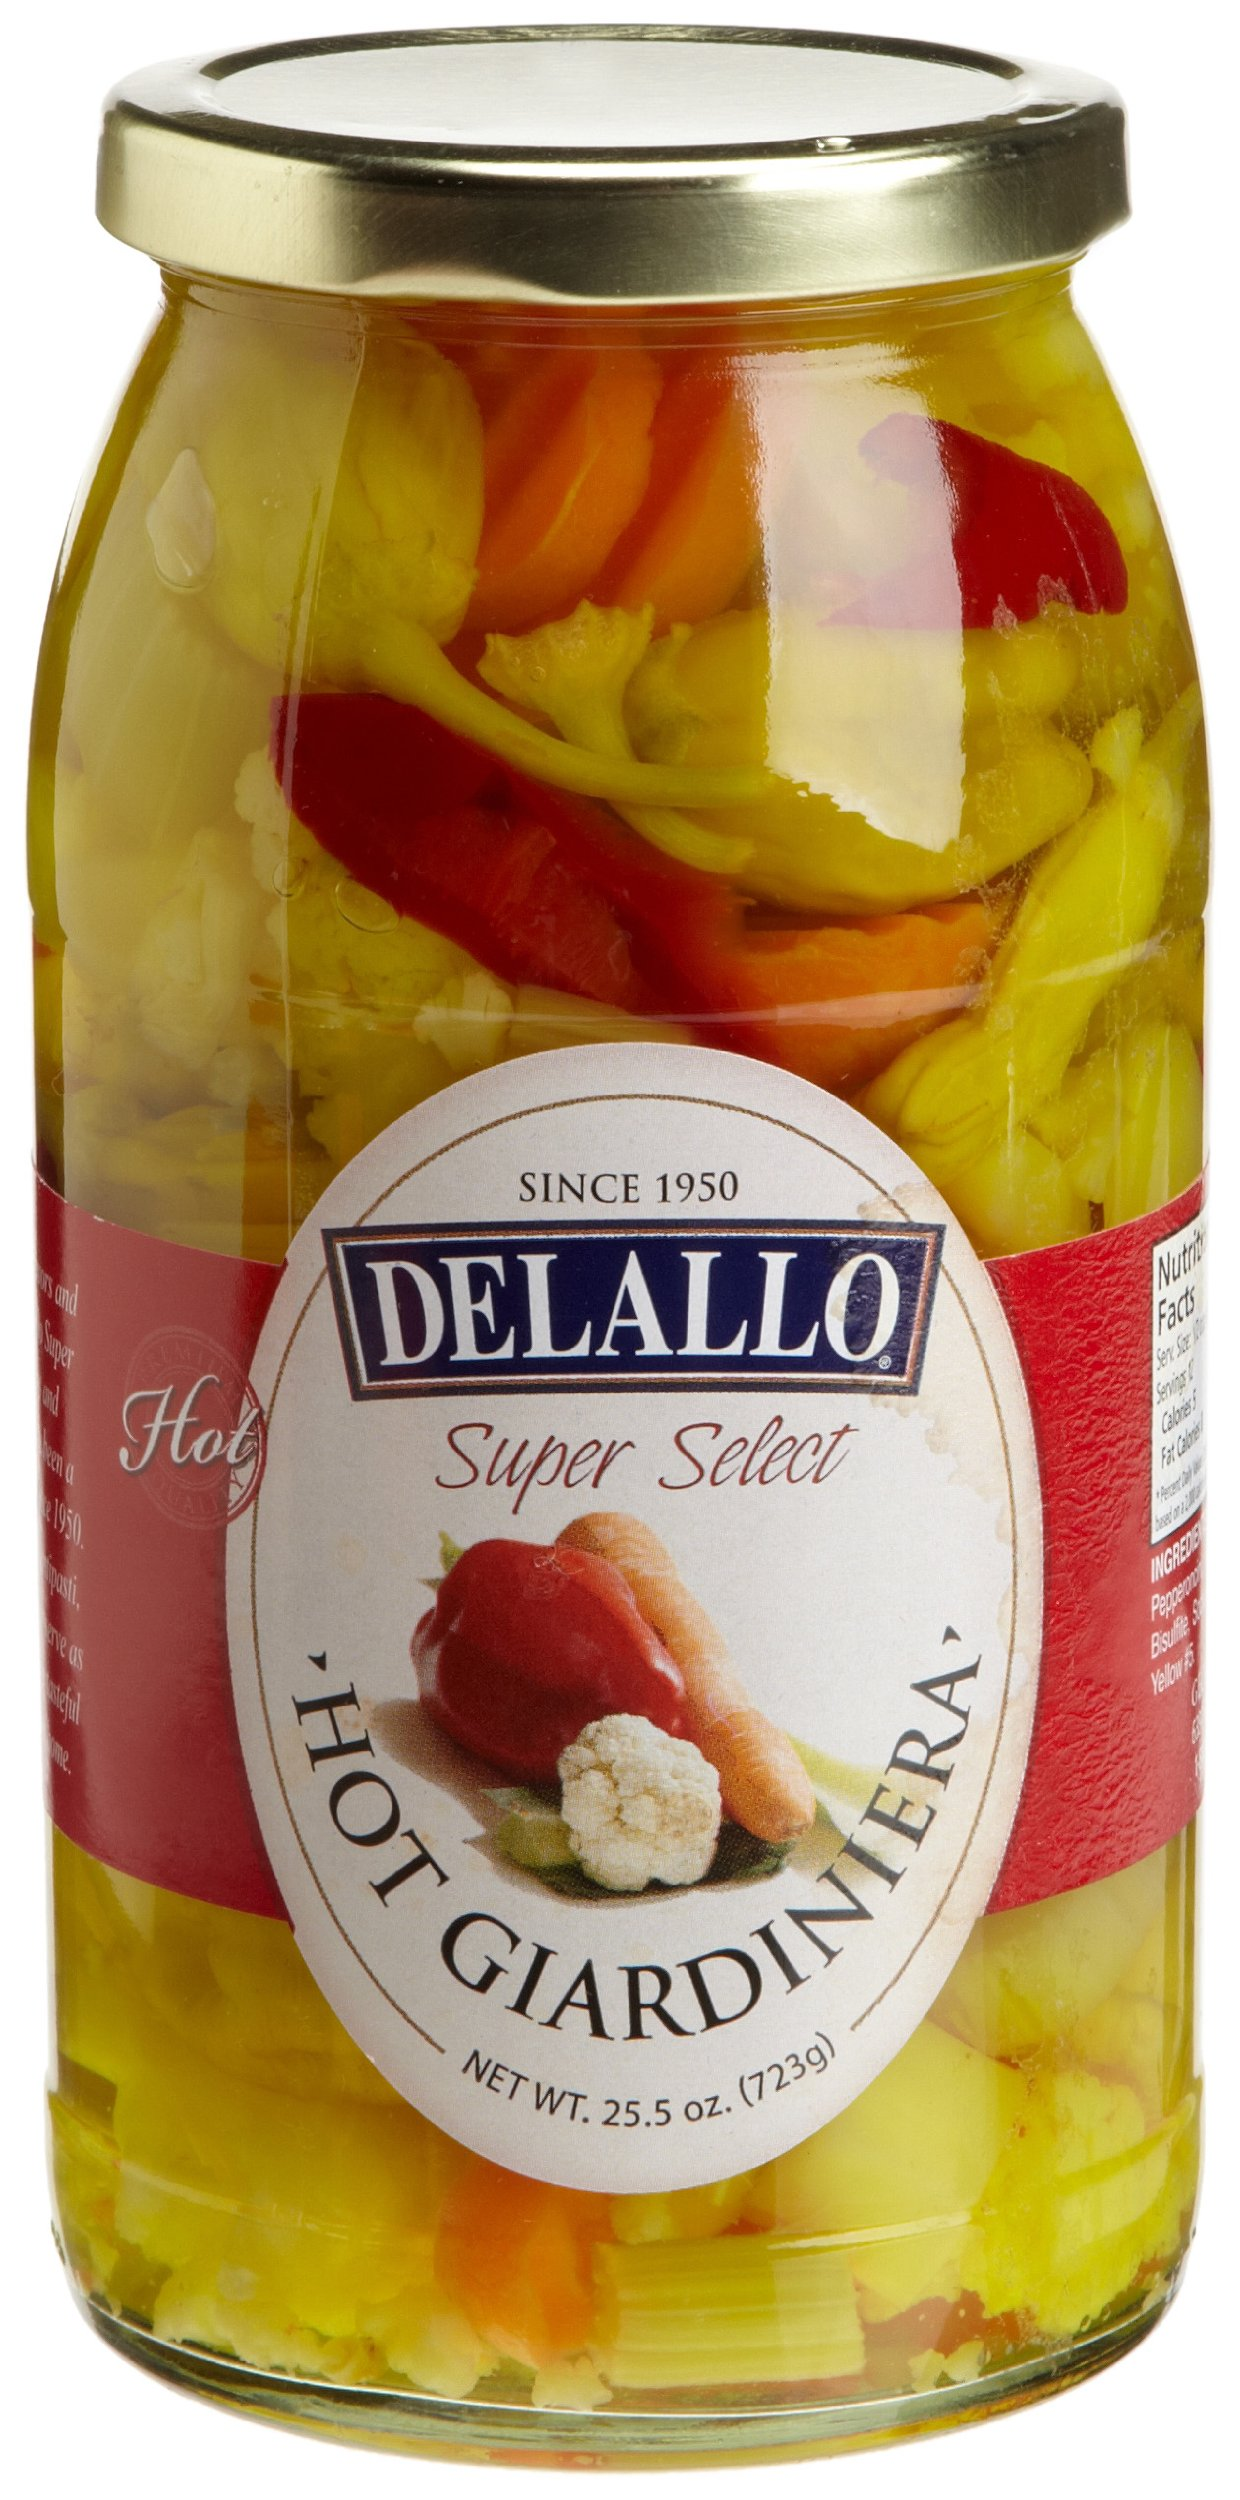 DeLallo Hot Giardiniera, 25.5-Ounce Jars (Pack of 6) by DeLallo